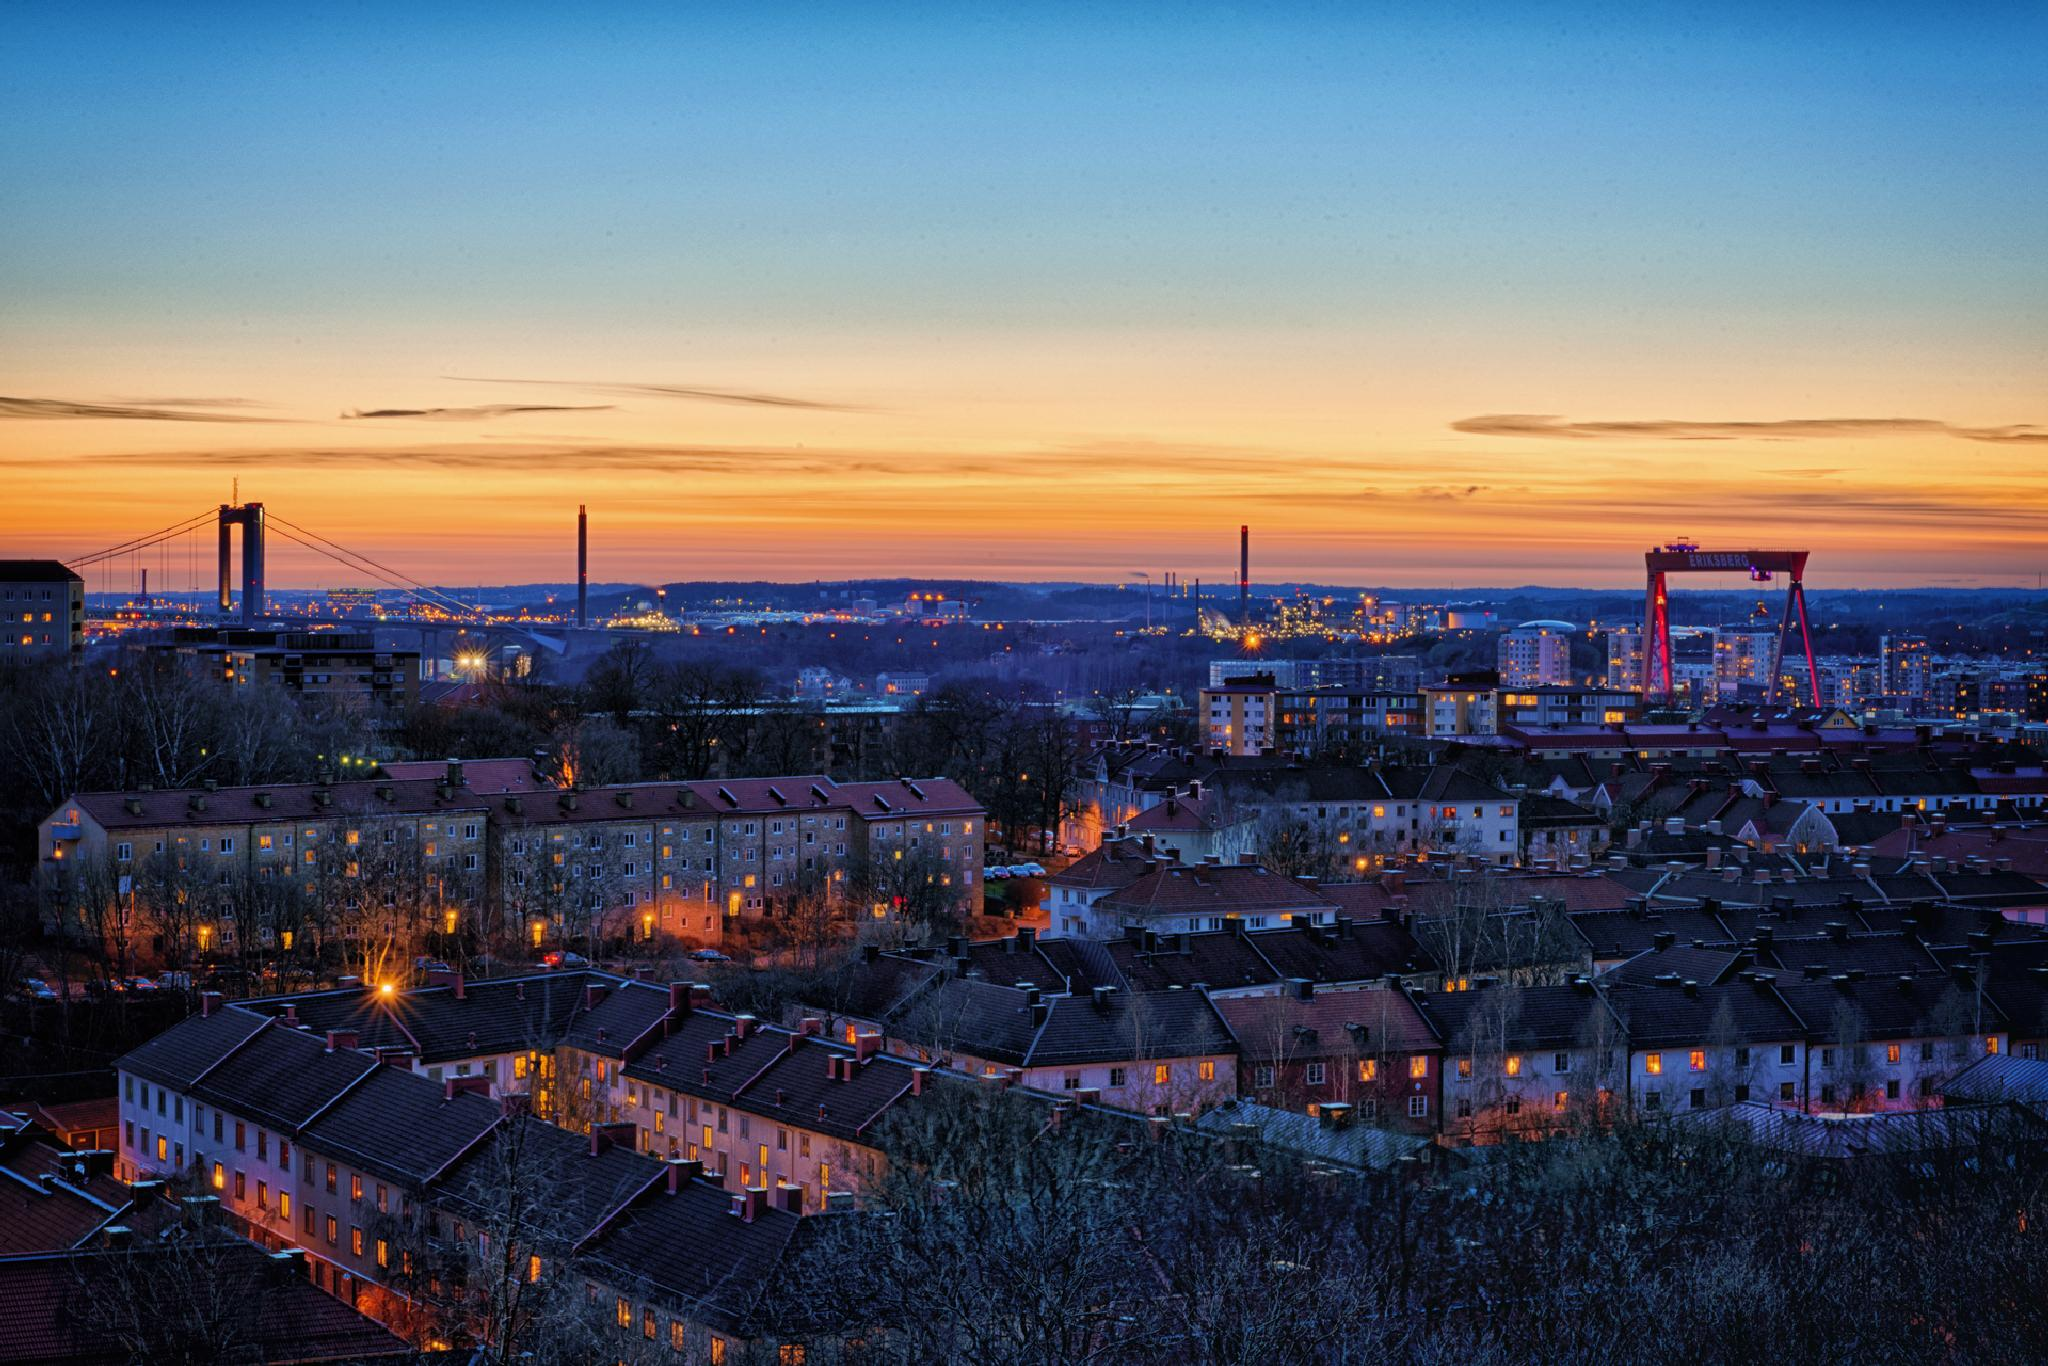 Sunset over Gothenburg by Peter Bergquist